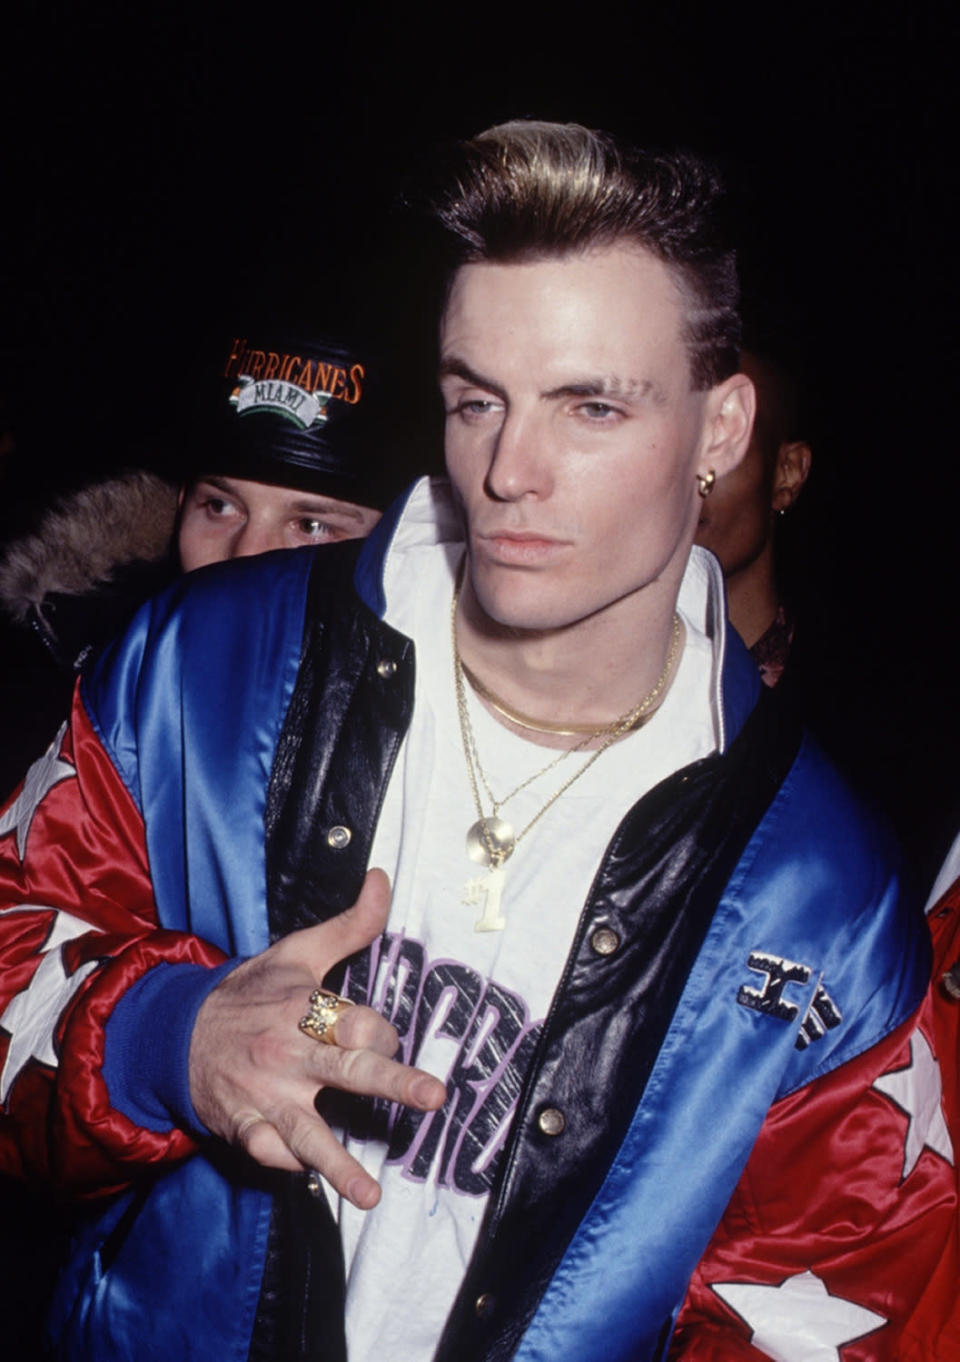 We see those eyebrow cuts! Vanilla Ice, circa 1985. (Photo by The LIFE Picture Collection/Getty Images)